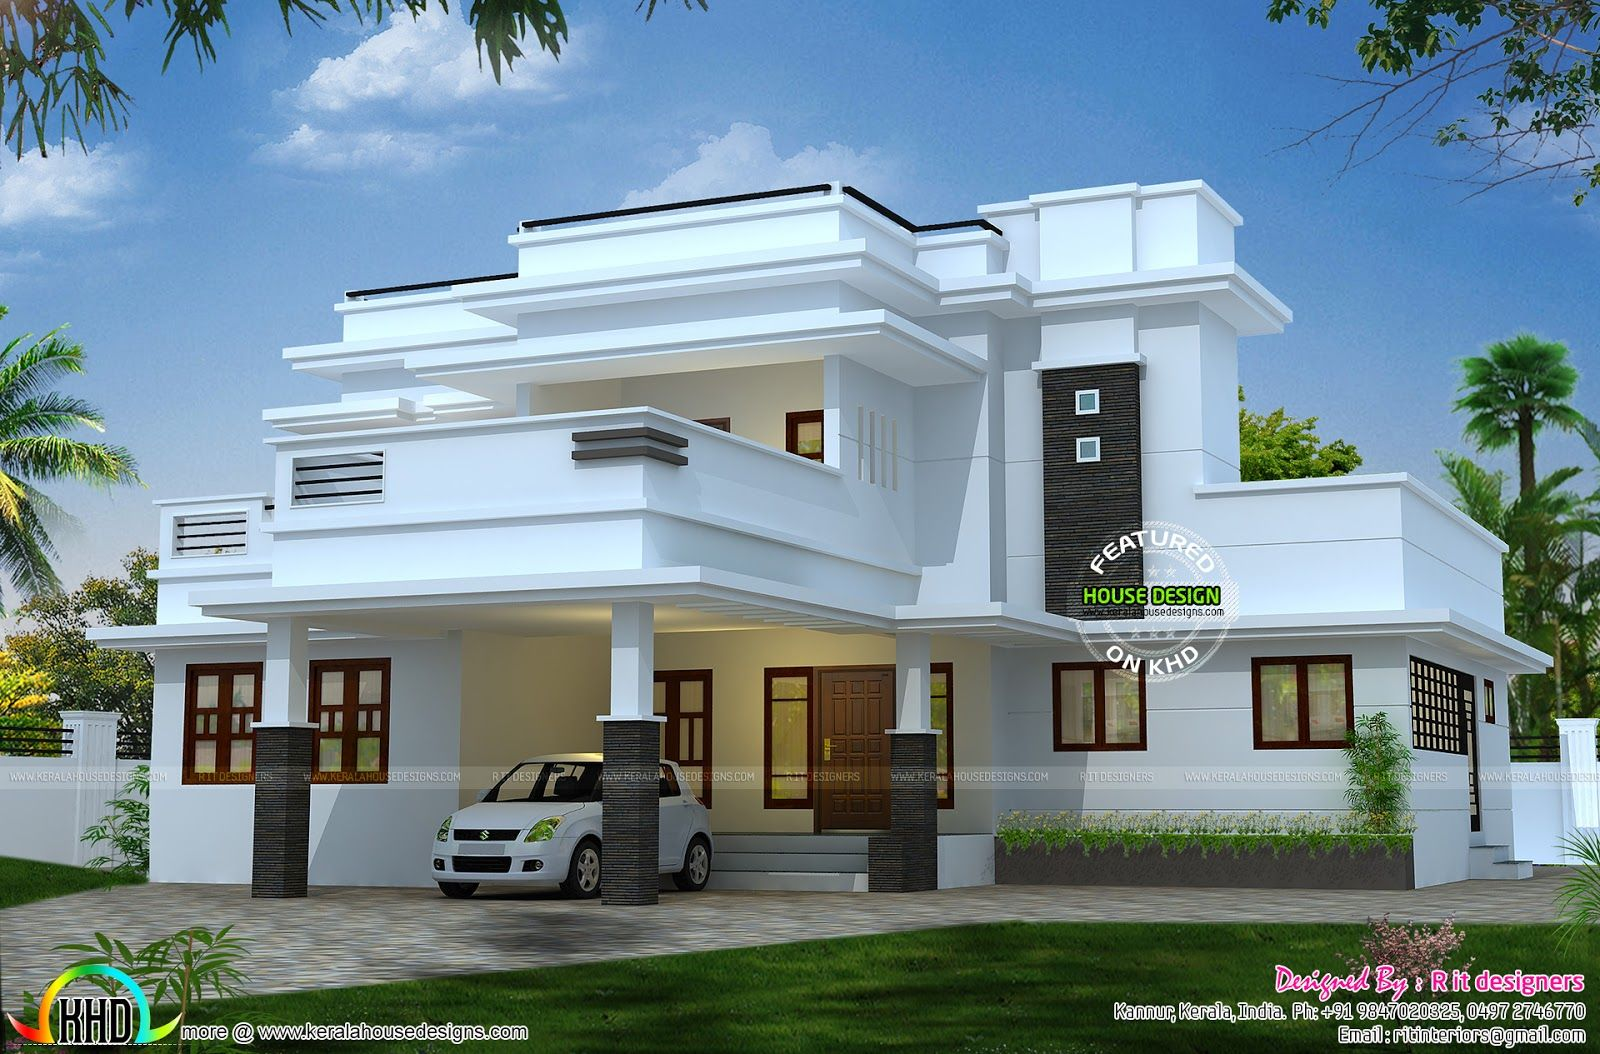 2995 Square Feet 3 Bedroom Flat Roof House Flat Roof House